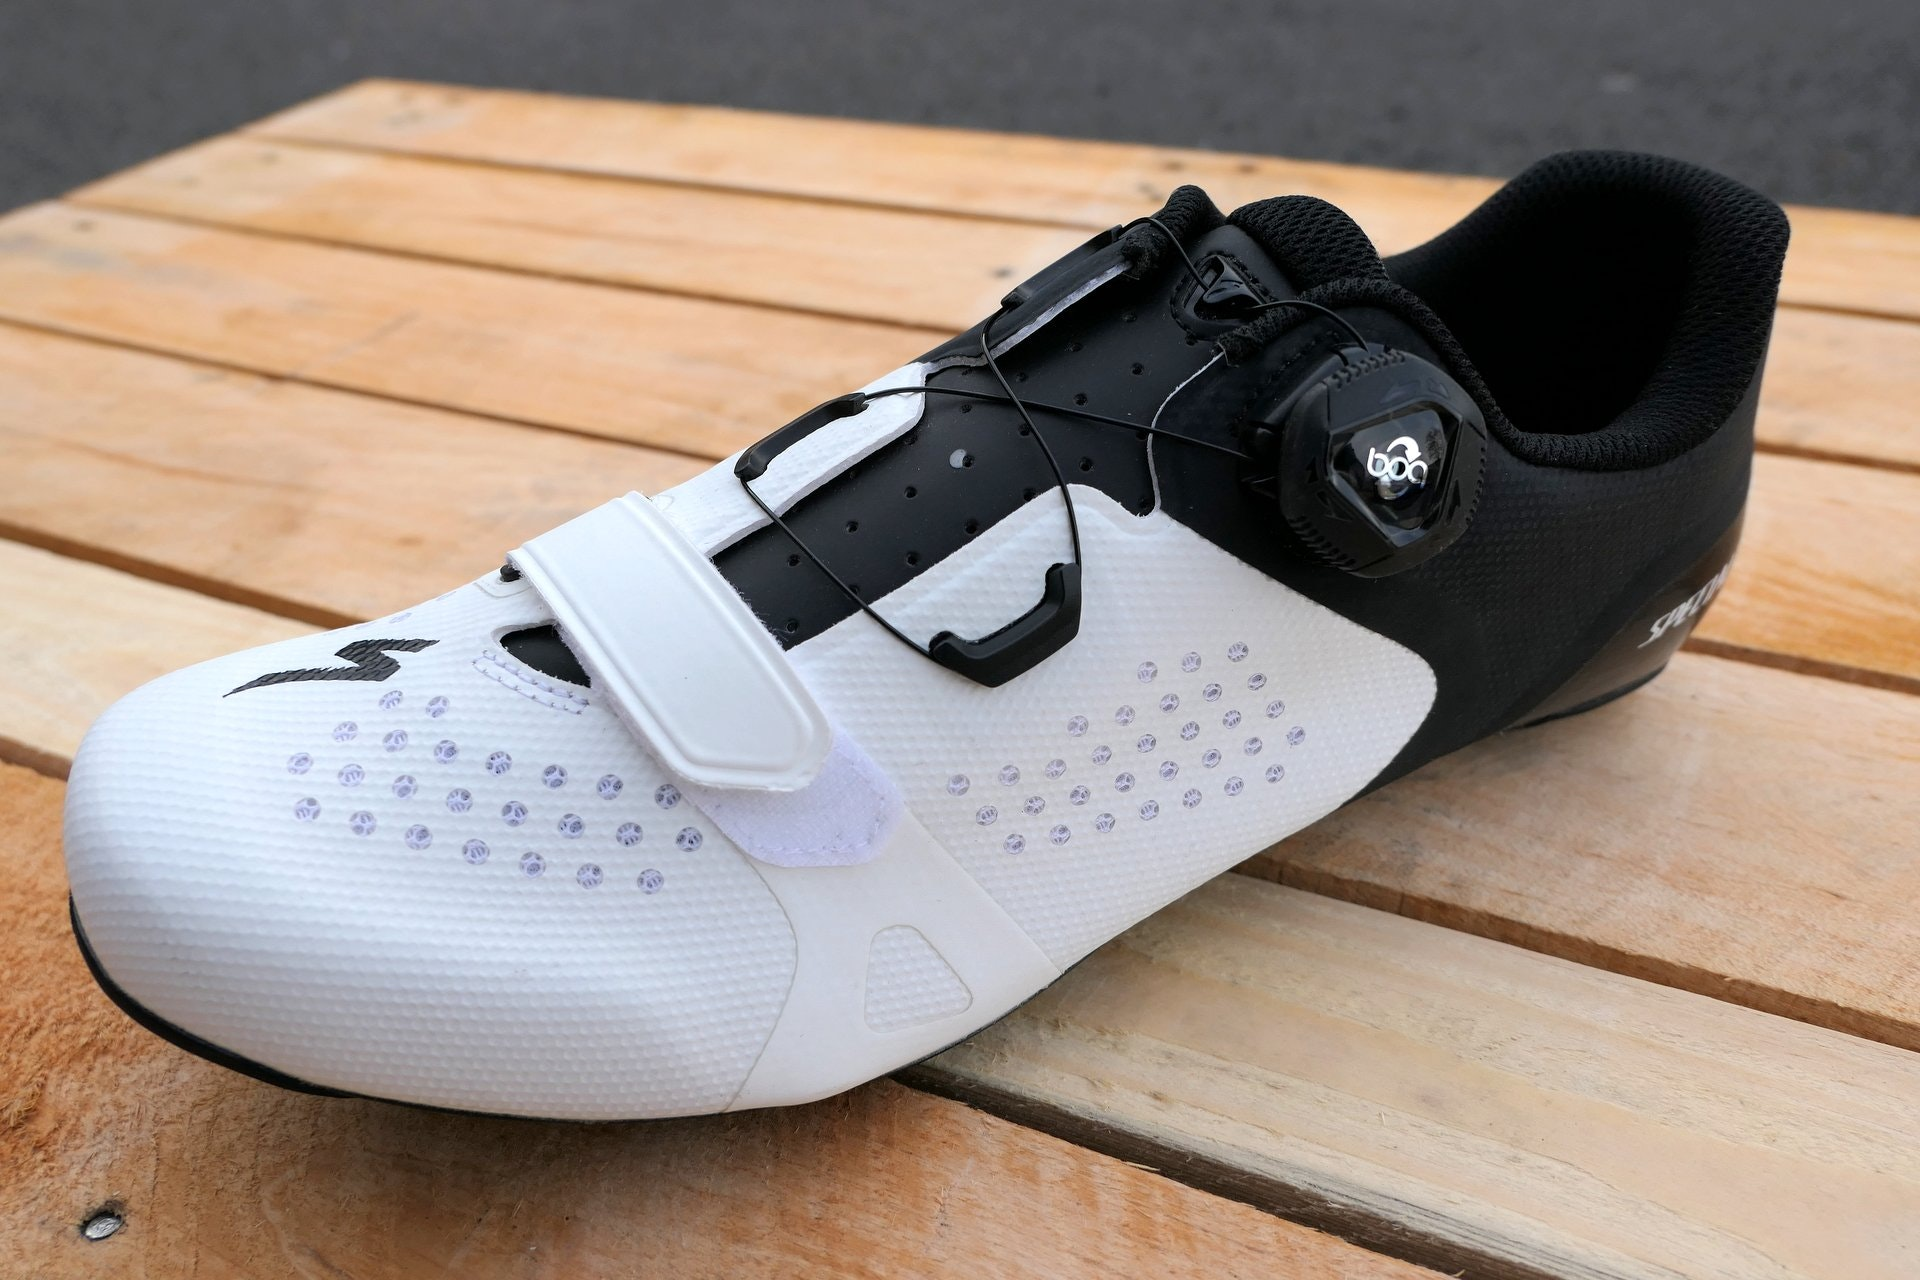 New Specialized Torch 2.0 Carbon Road Bike Cycling Bike Shoes *Multiple Sizes*